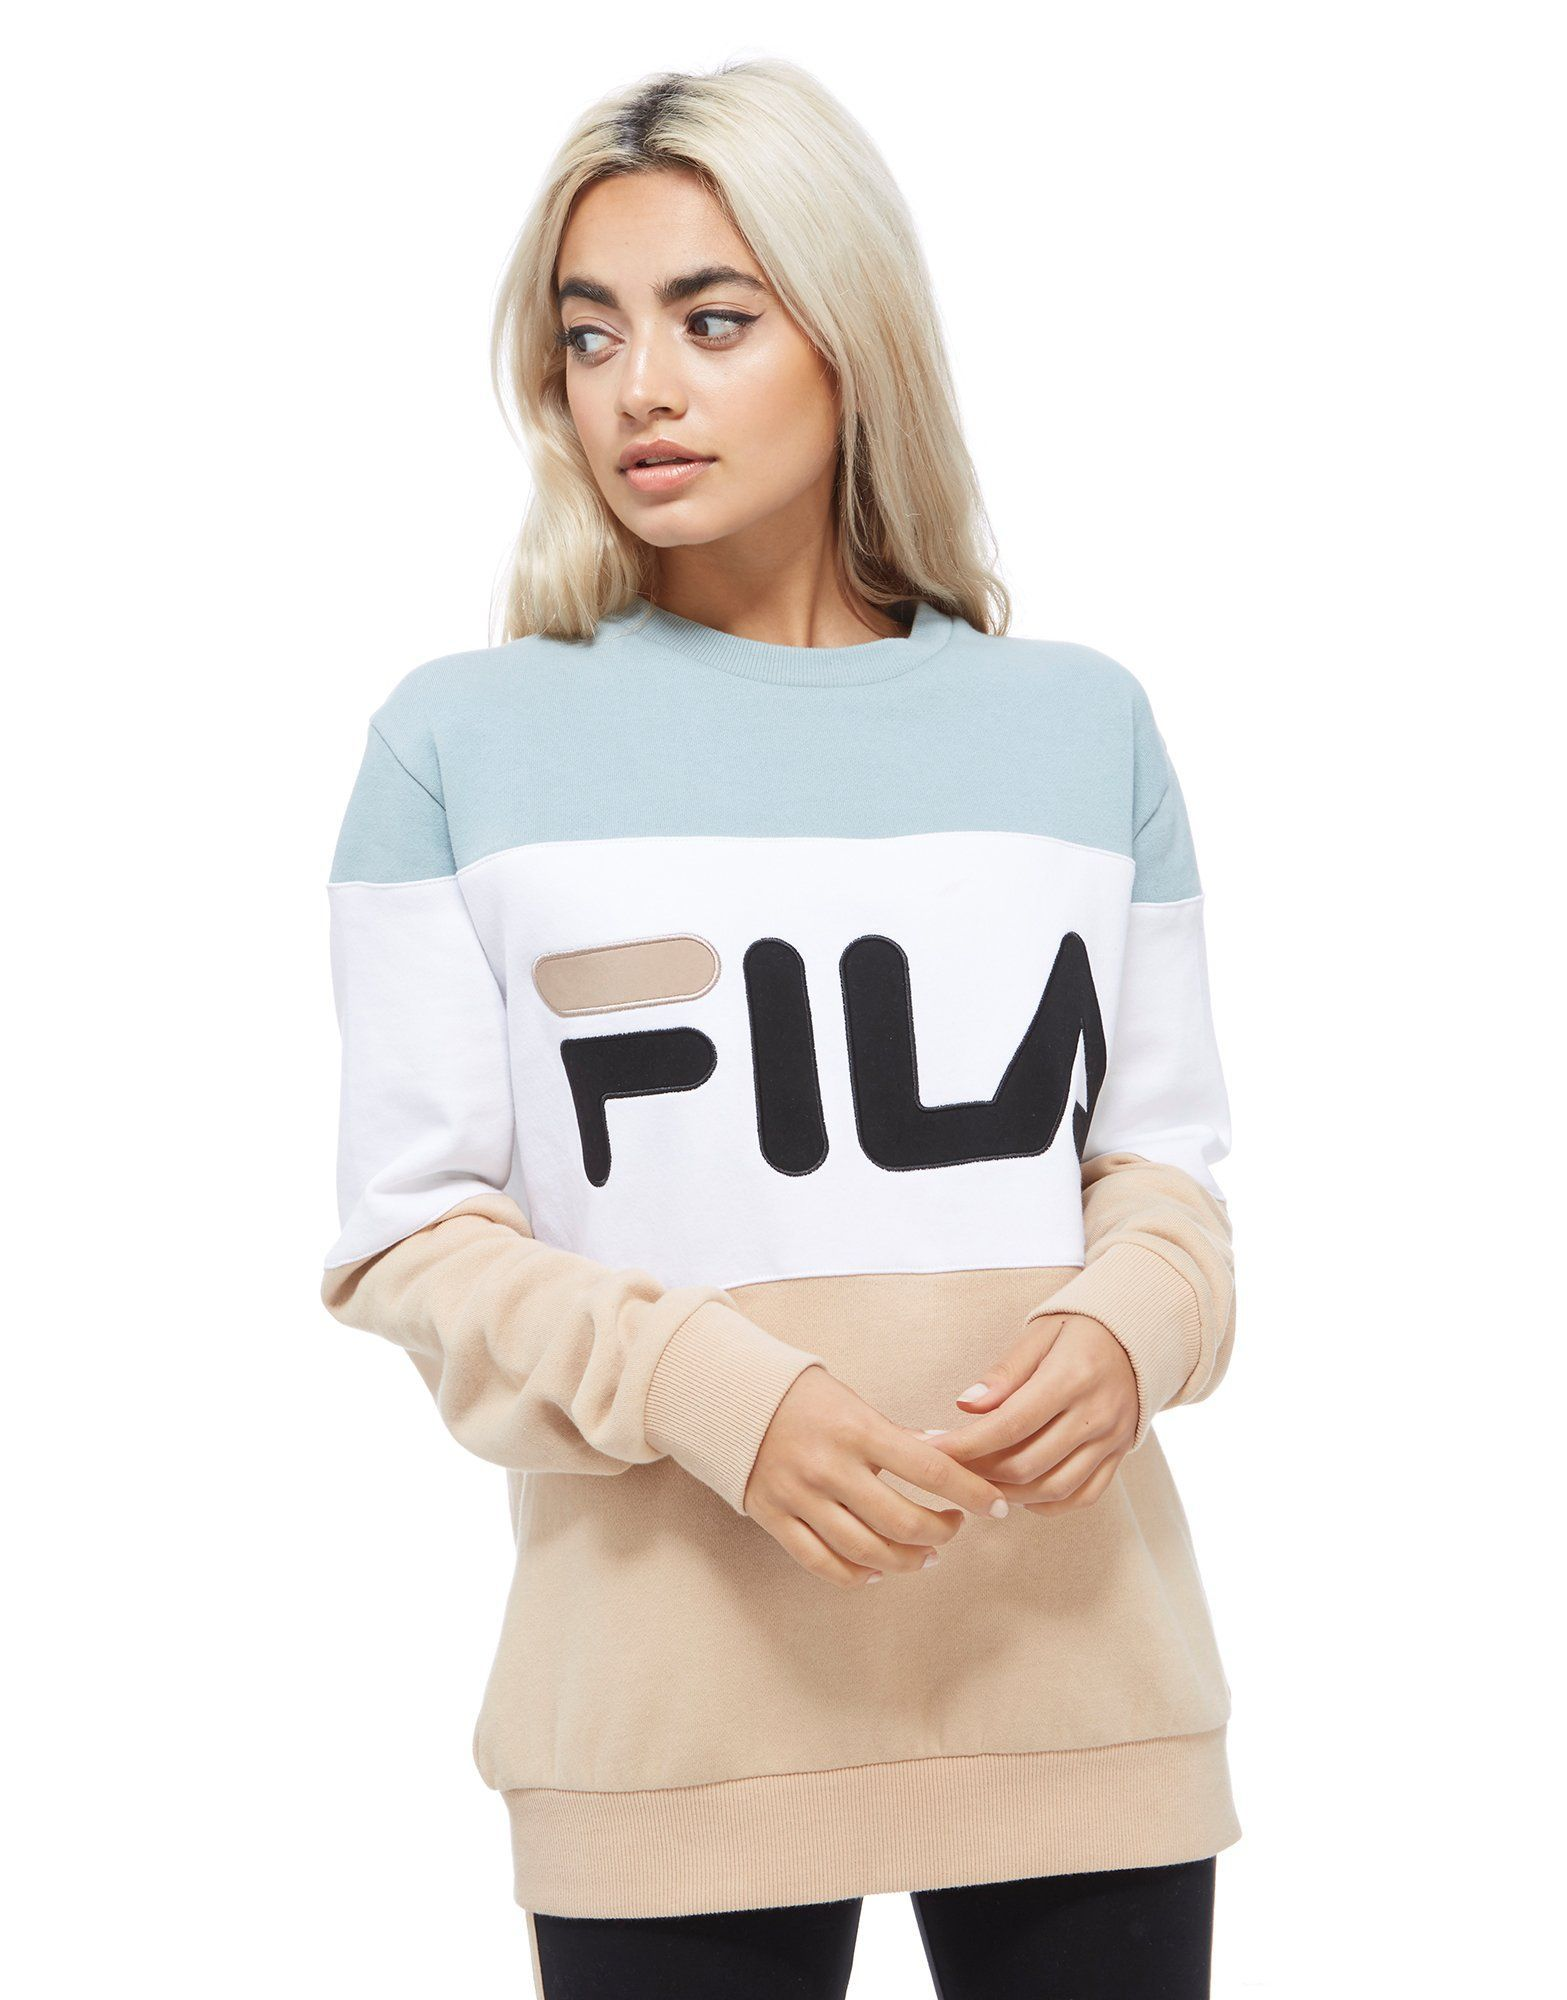 fila sweatshirt shop online for fila sweatshirt with jd sports the uk 39 s leading sports. Black Bedroom Furniture Sets. Home Design Ideas